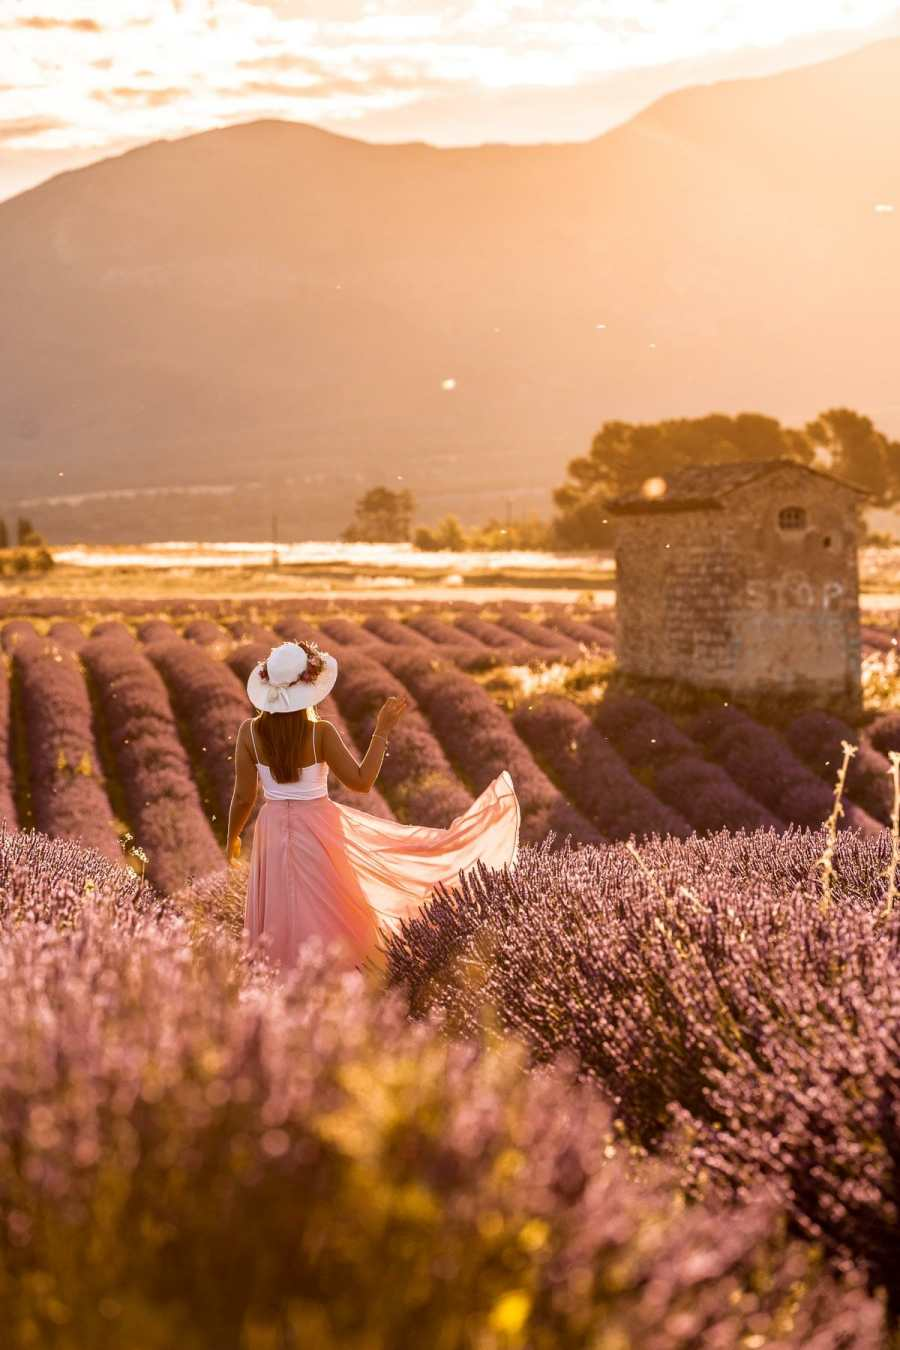 Girl in a pink skirt standing in the lavender fields in Provence at sunrise